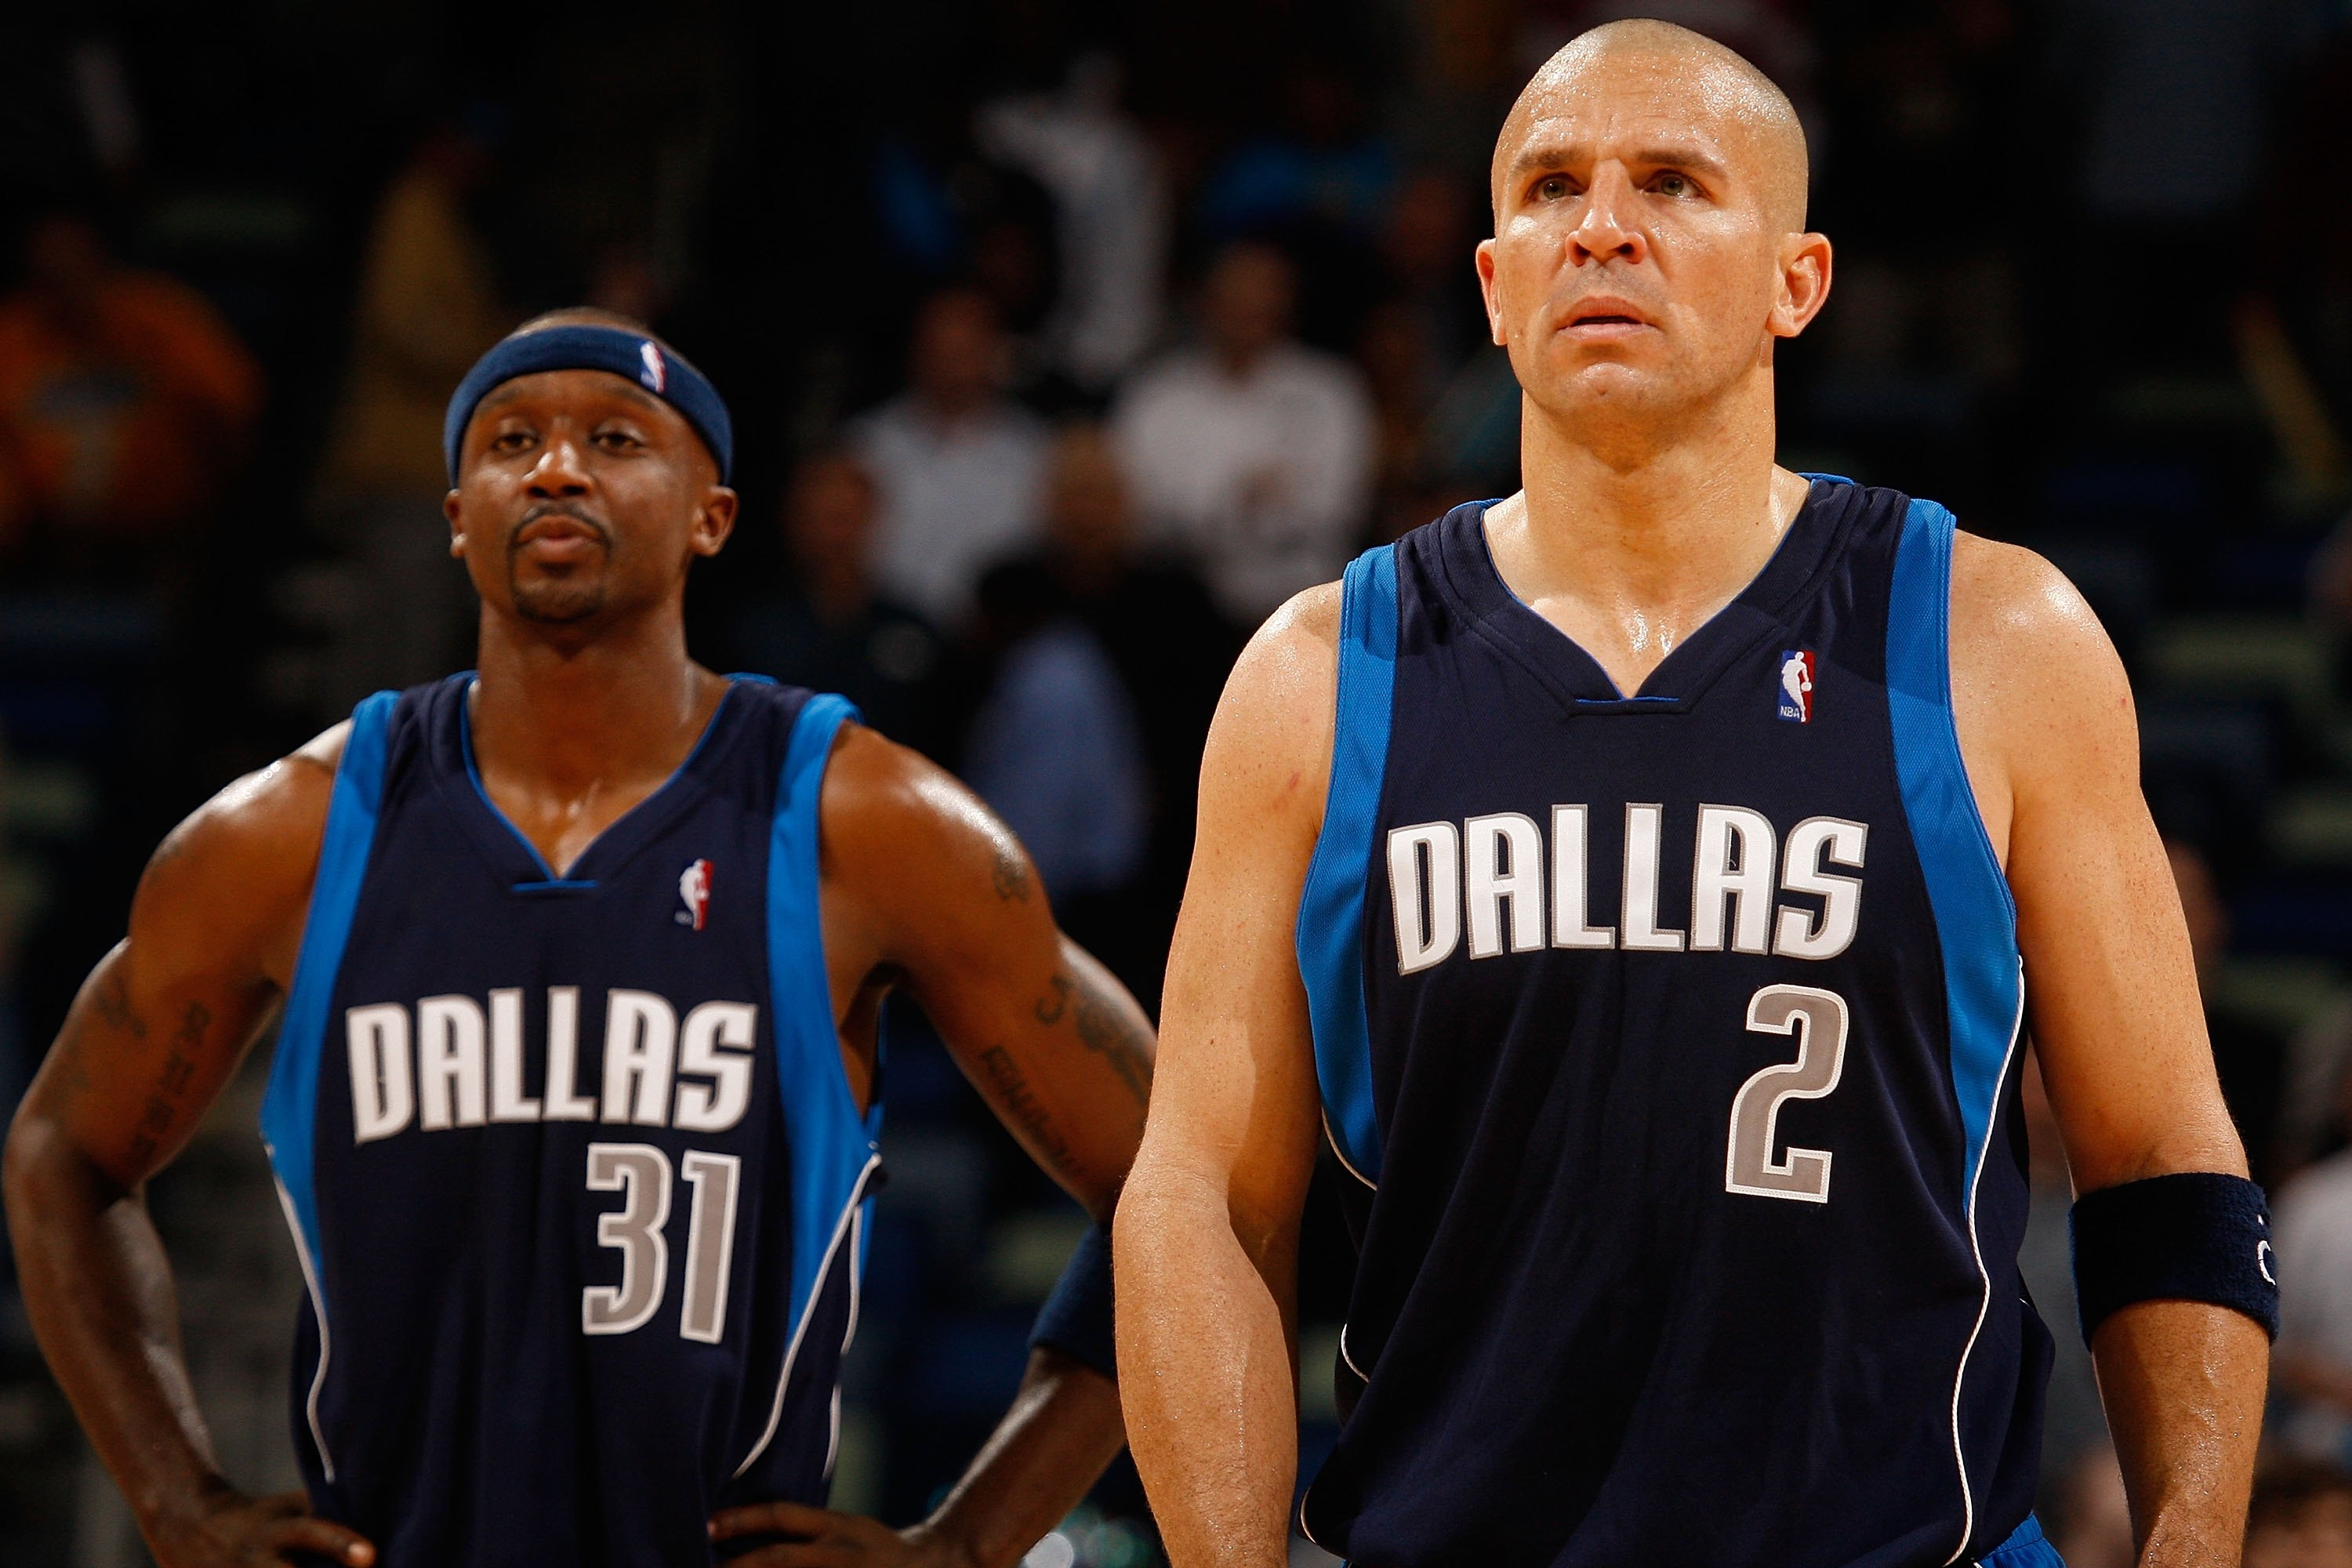 NEW ORLEANS - NOVEMBER 04:  Jason Terry #31 and Jason Kidd #2 of the Dallas Mavericks during the game against the New Orleans Hornets at New Orleans Arena on November 4, 2009 in New Orleans, Louisiana.  NOTE TO USER: User expressly acknowledges and agrees